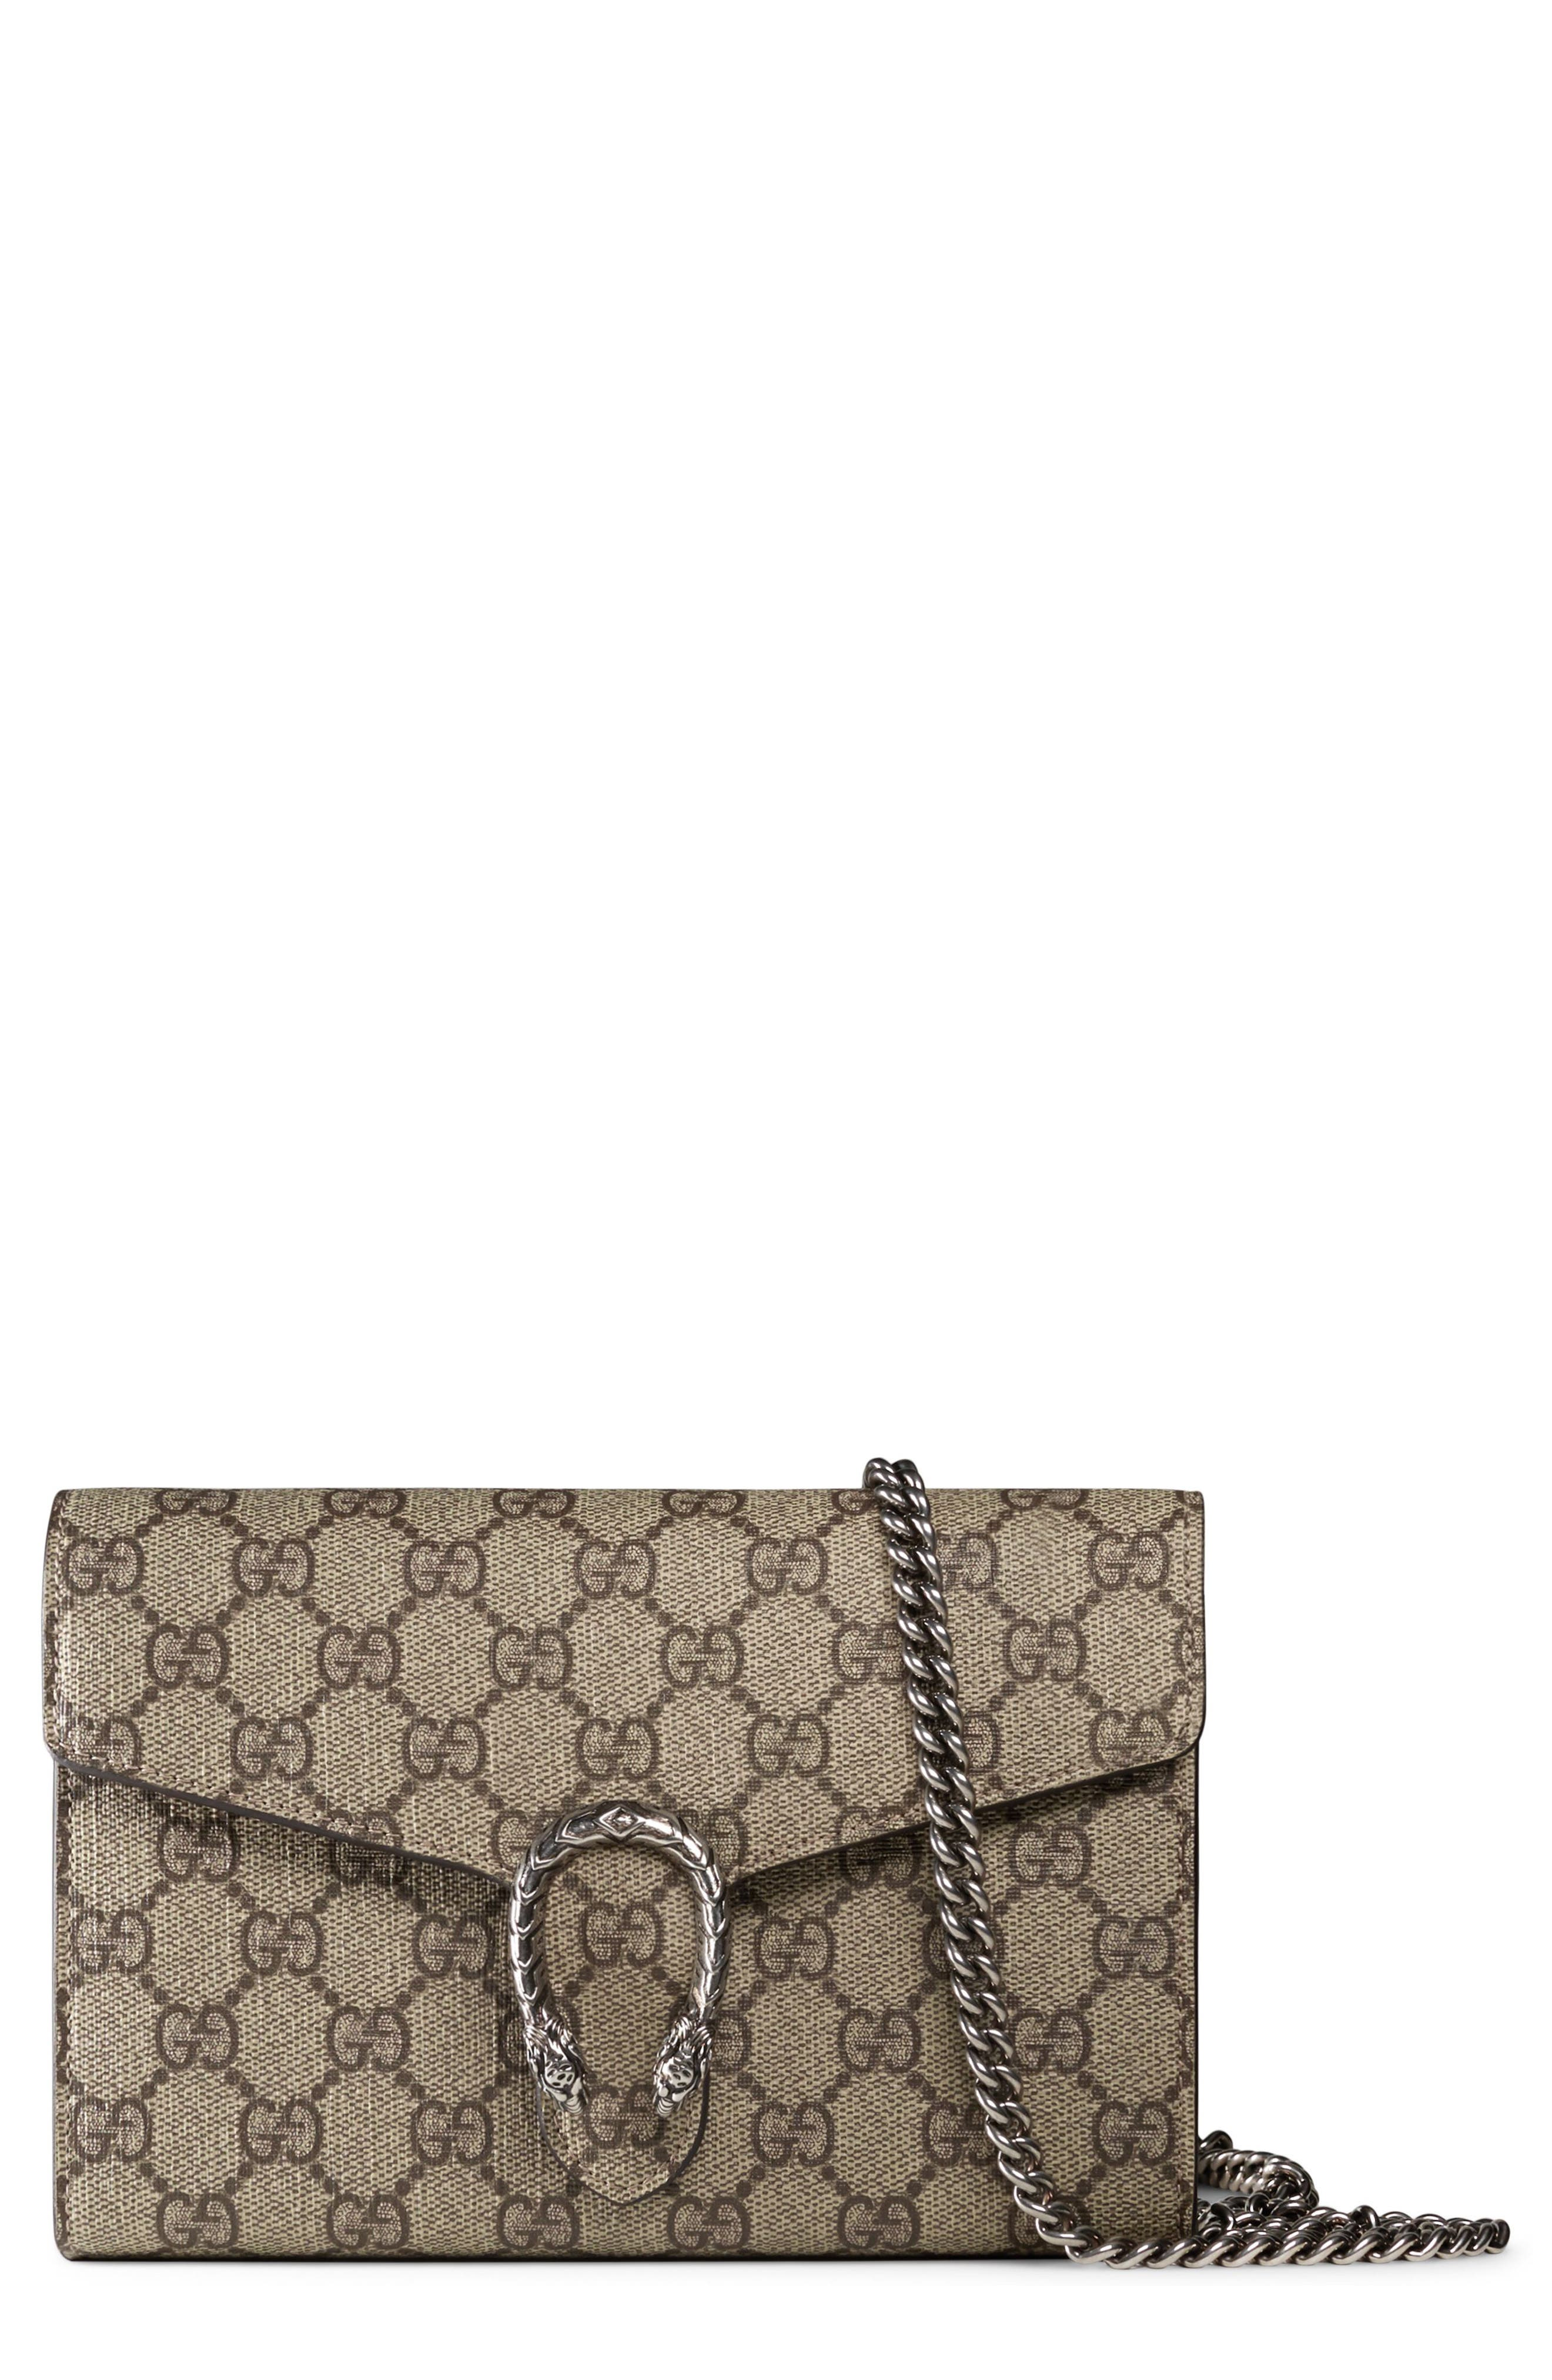 Dionysus GG Supreme Canvas Wallet on a Chain